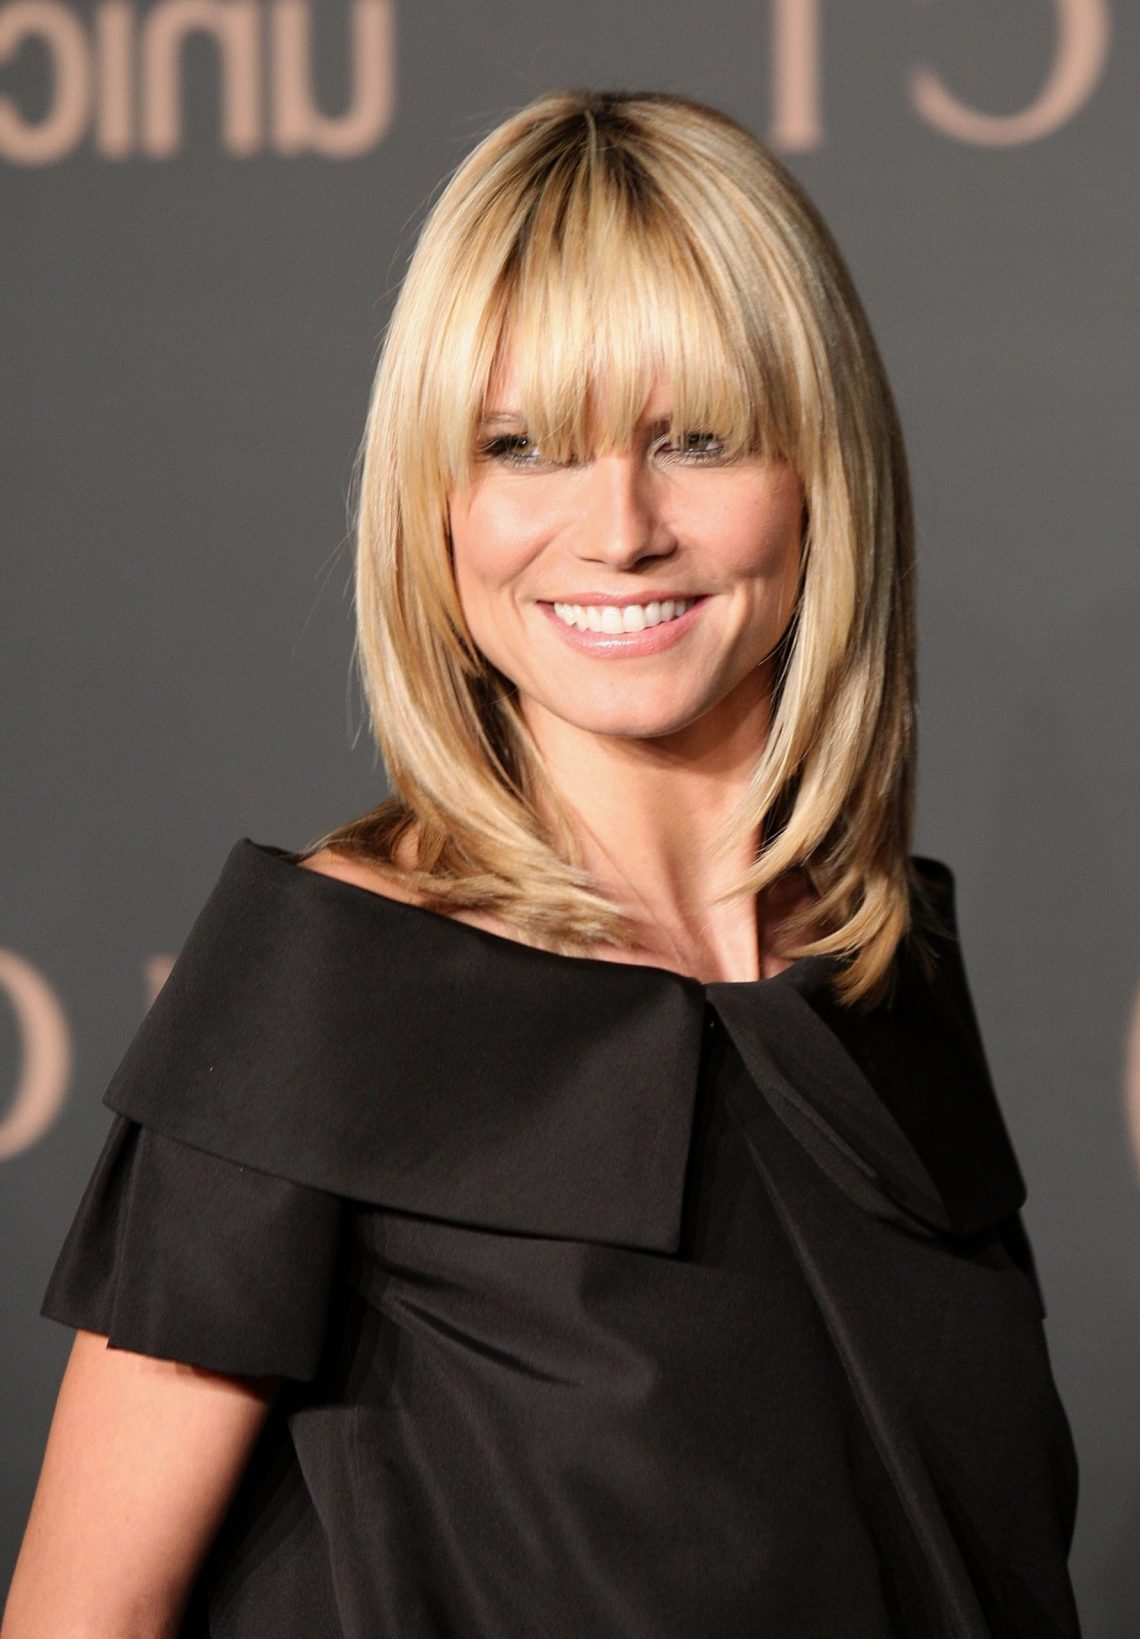 40 Best Hairstyles With Bangs Photos Of Celebrity Haircuts Medium Length Hairstyles With Straight Bangs